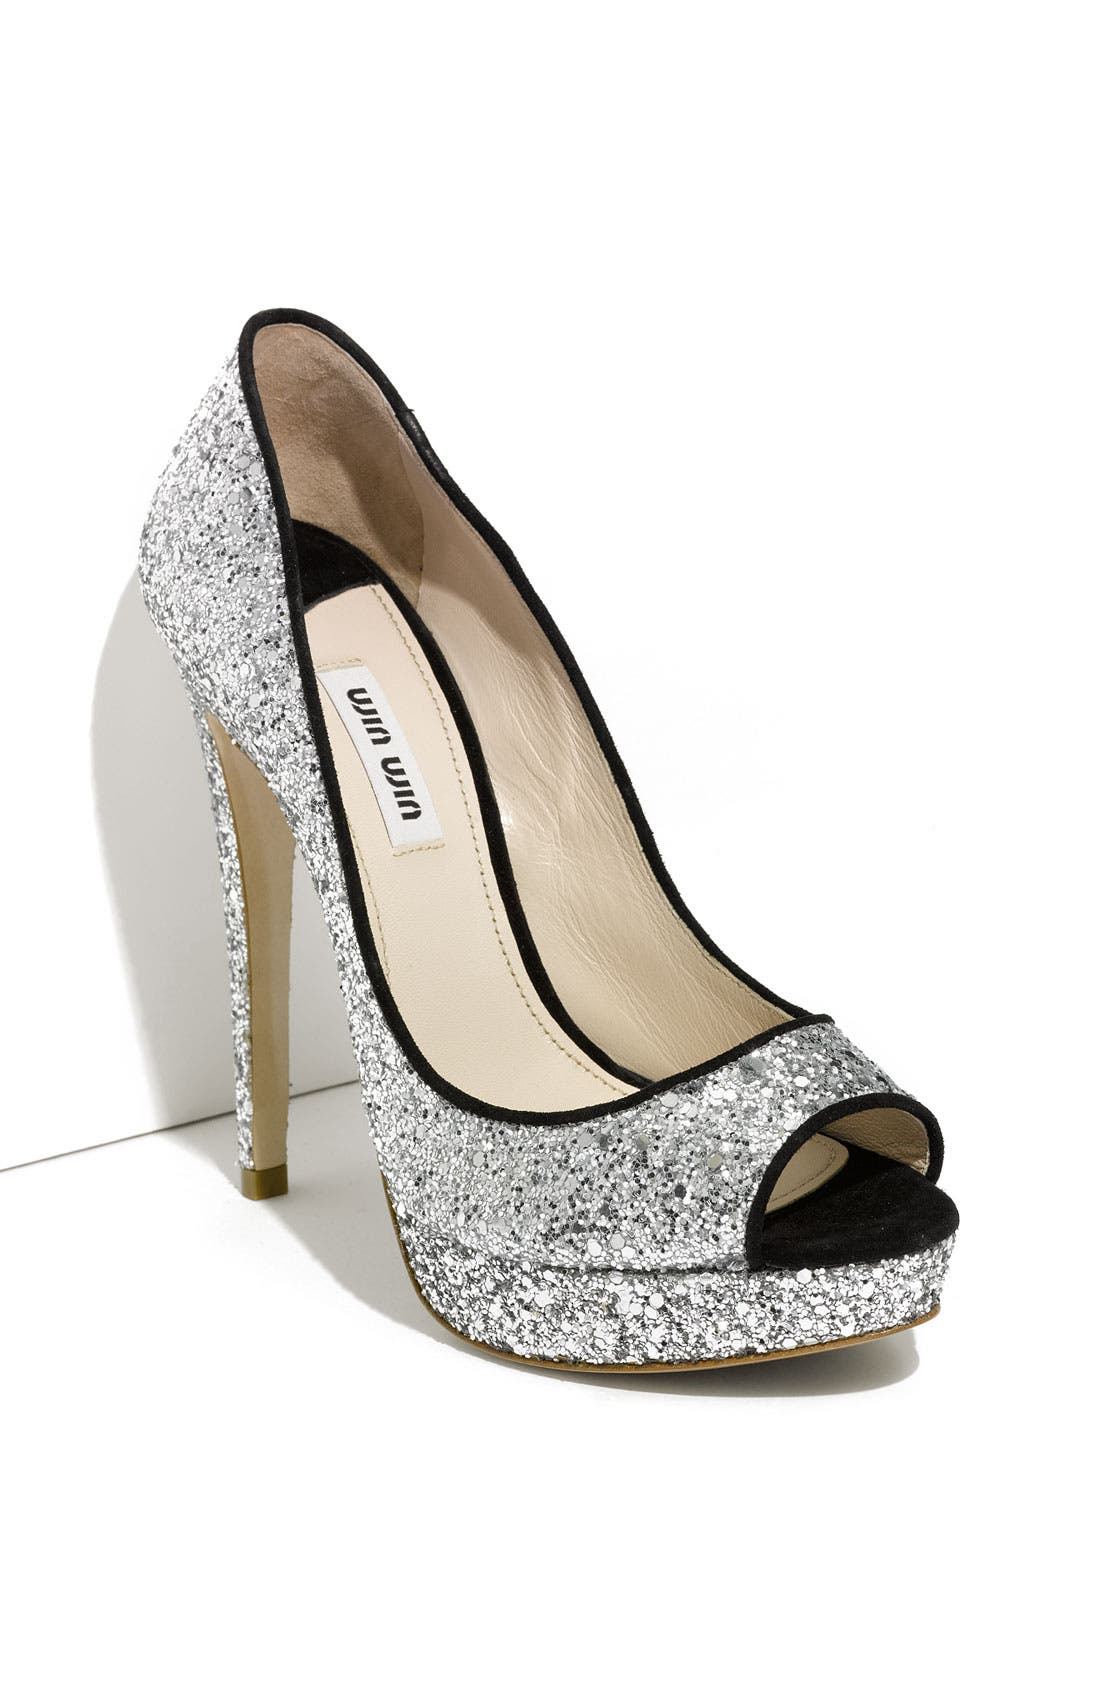 Alternate Image 1 Selected - Miu Miu Glitter Open Toe Platform Pump